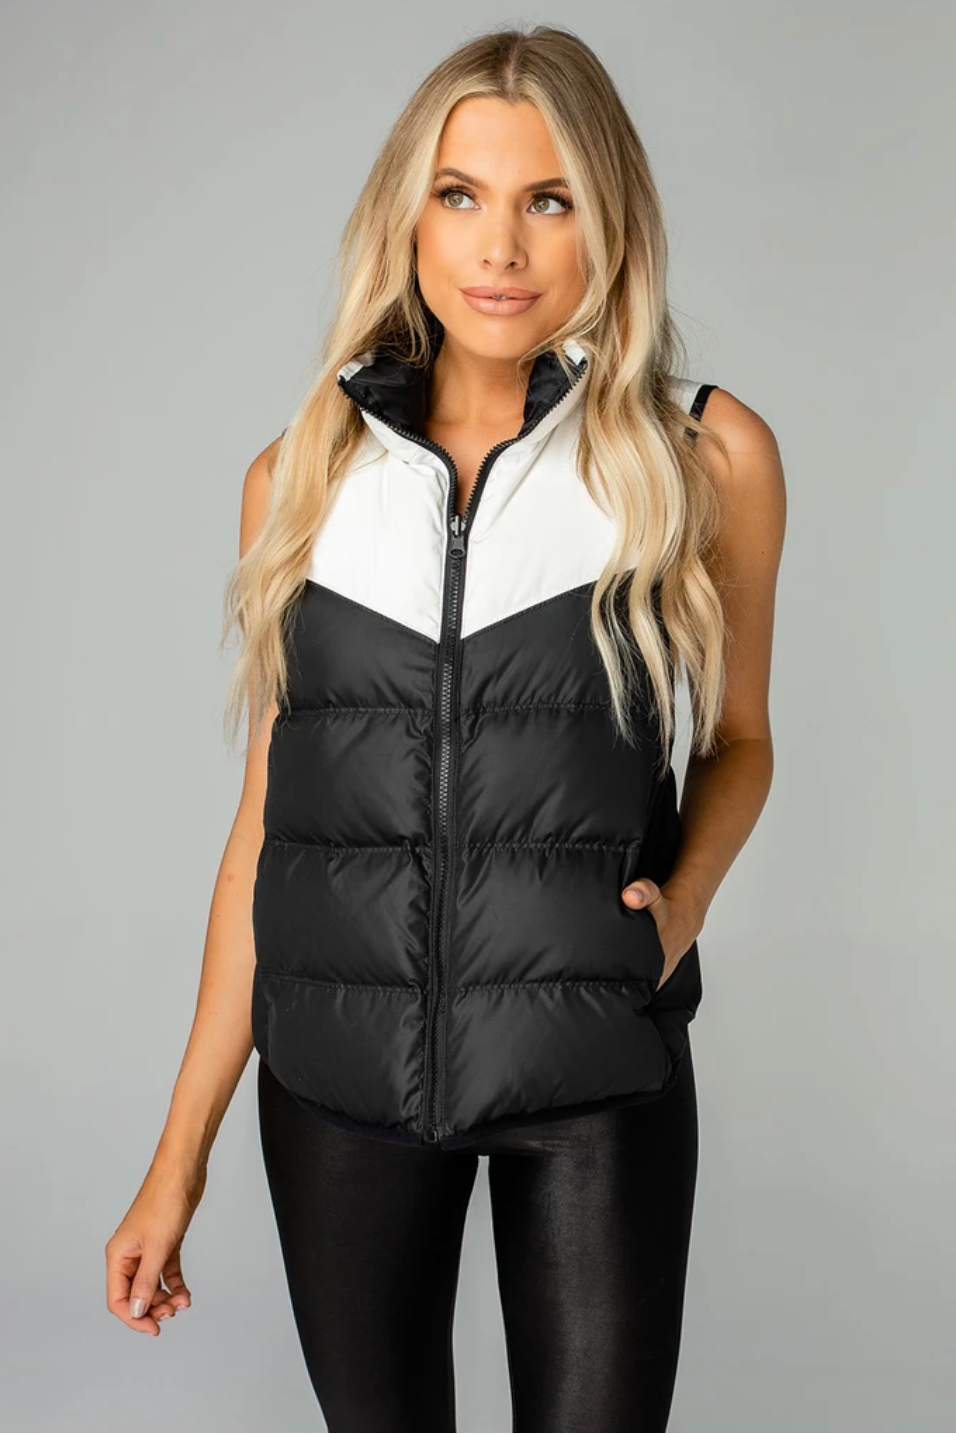 Kelli's Fav Puffy Vest